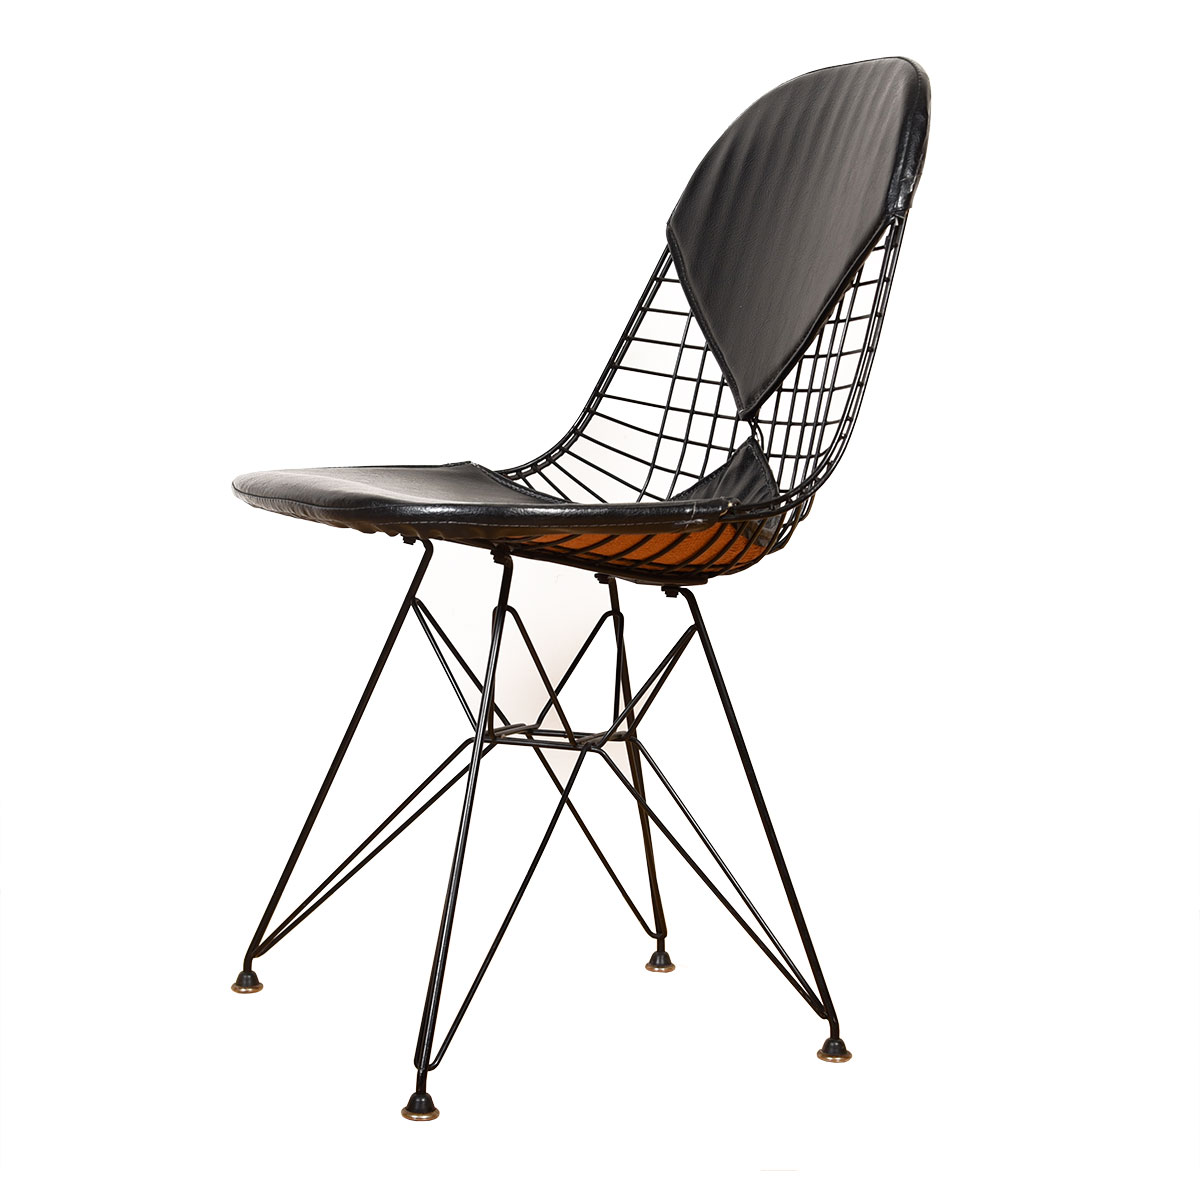 Early Vintage Mid-Century Eames 'Bikini' Chair for Herman Miller